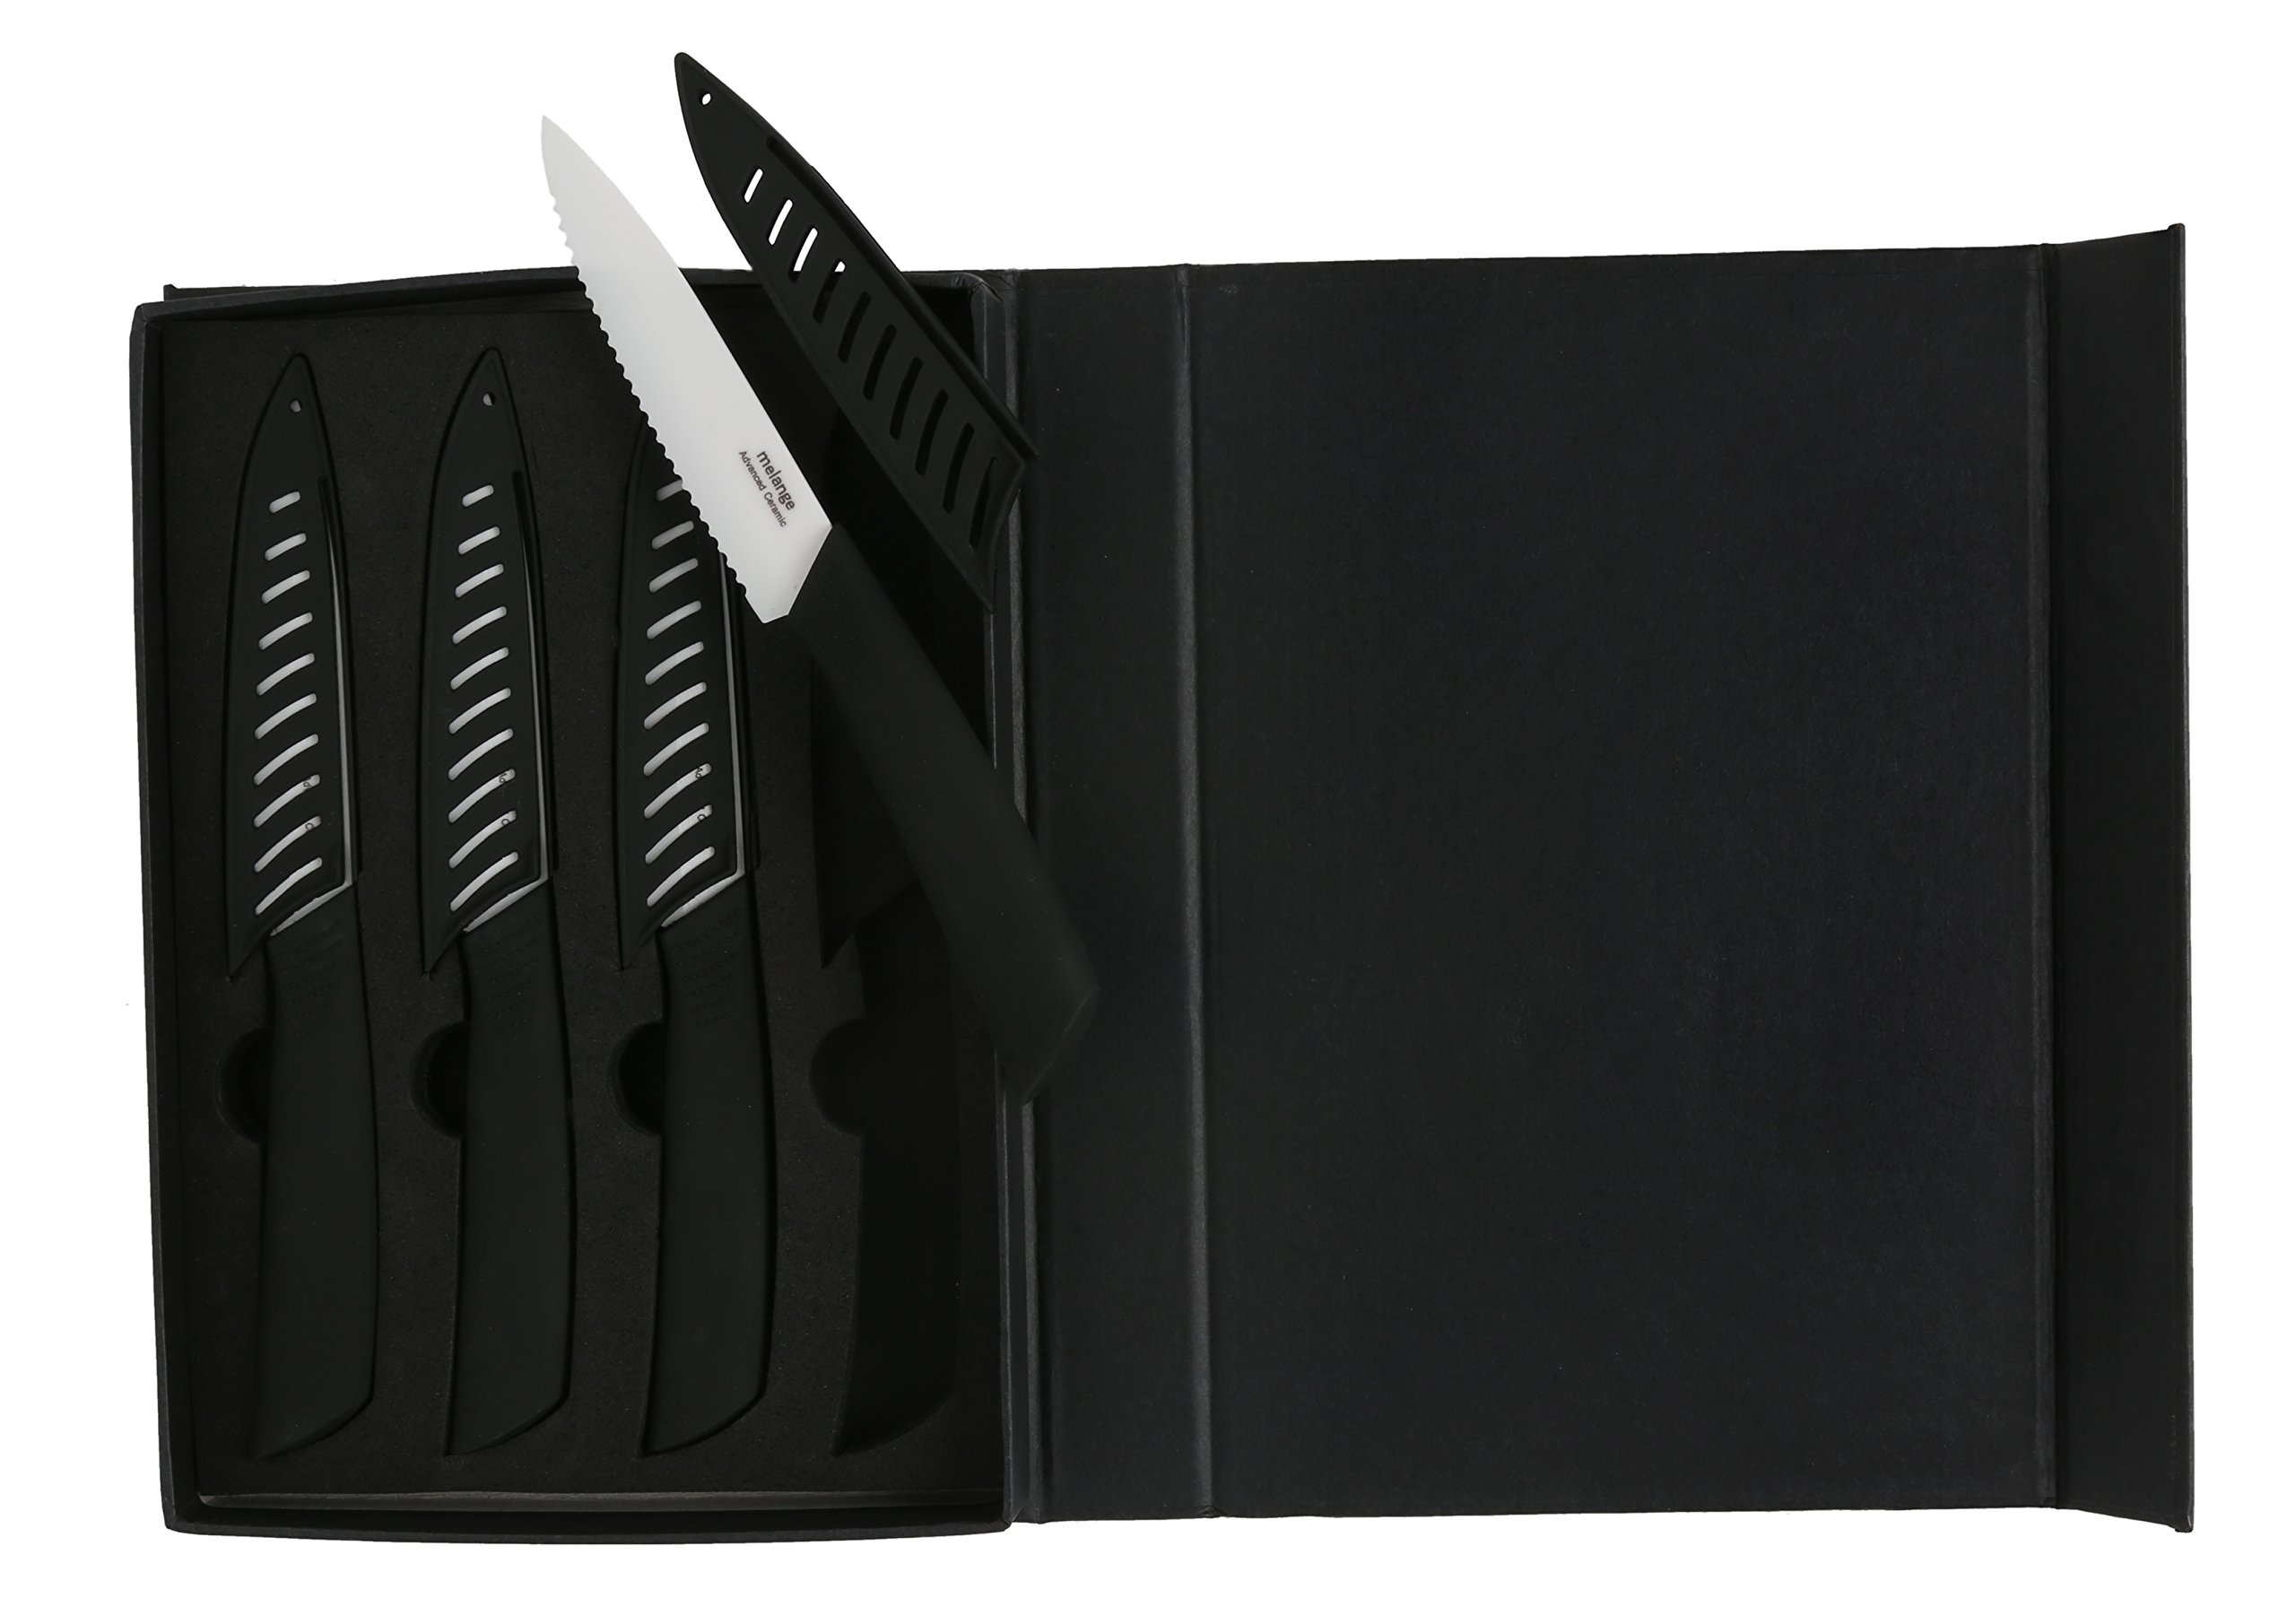 Melange 8-Piece Ceramic Steak Knife Set with Black Handle and White Blade by Melange